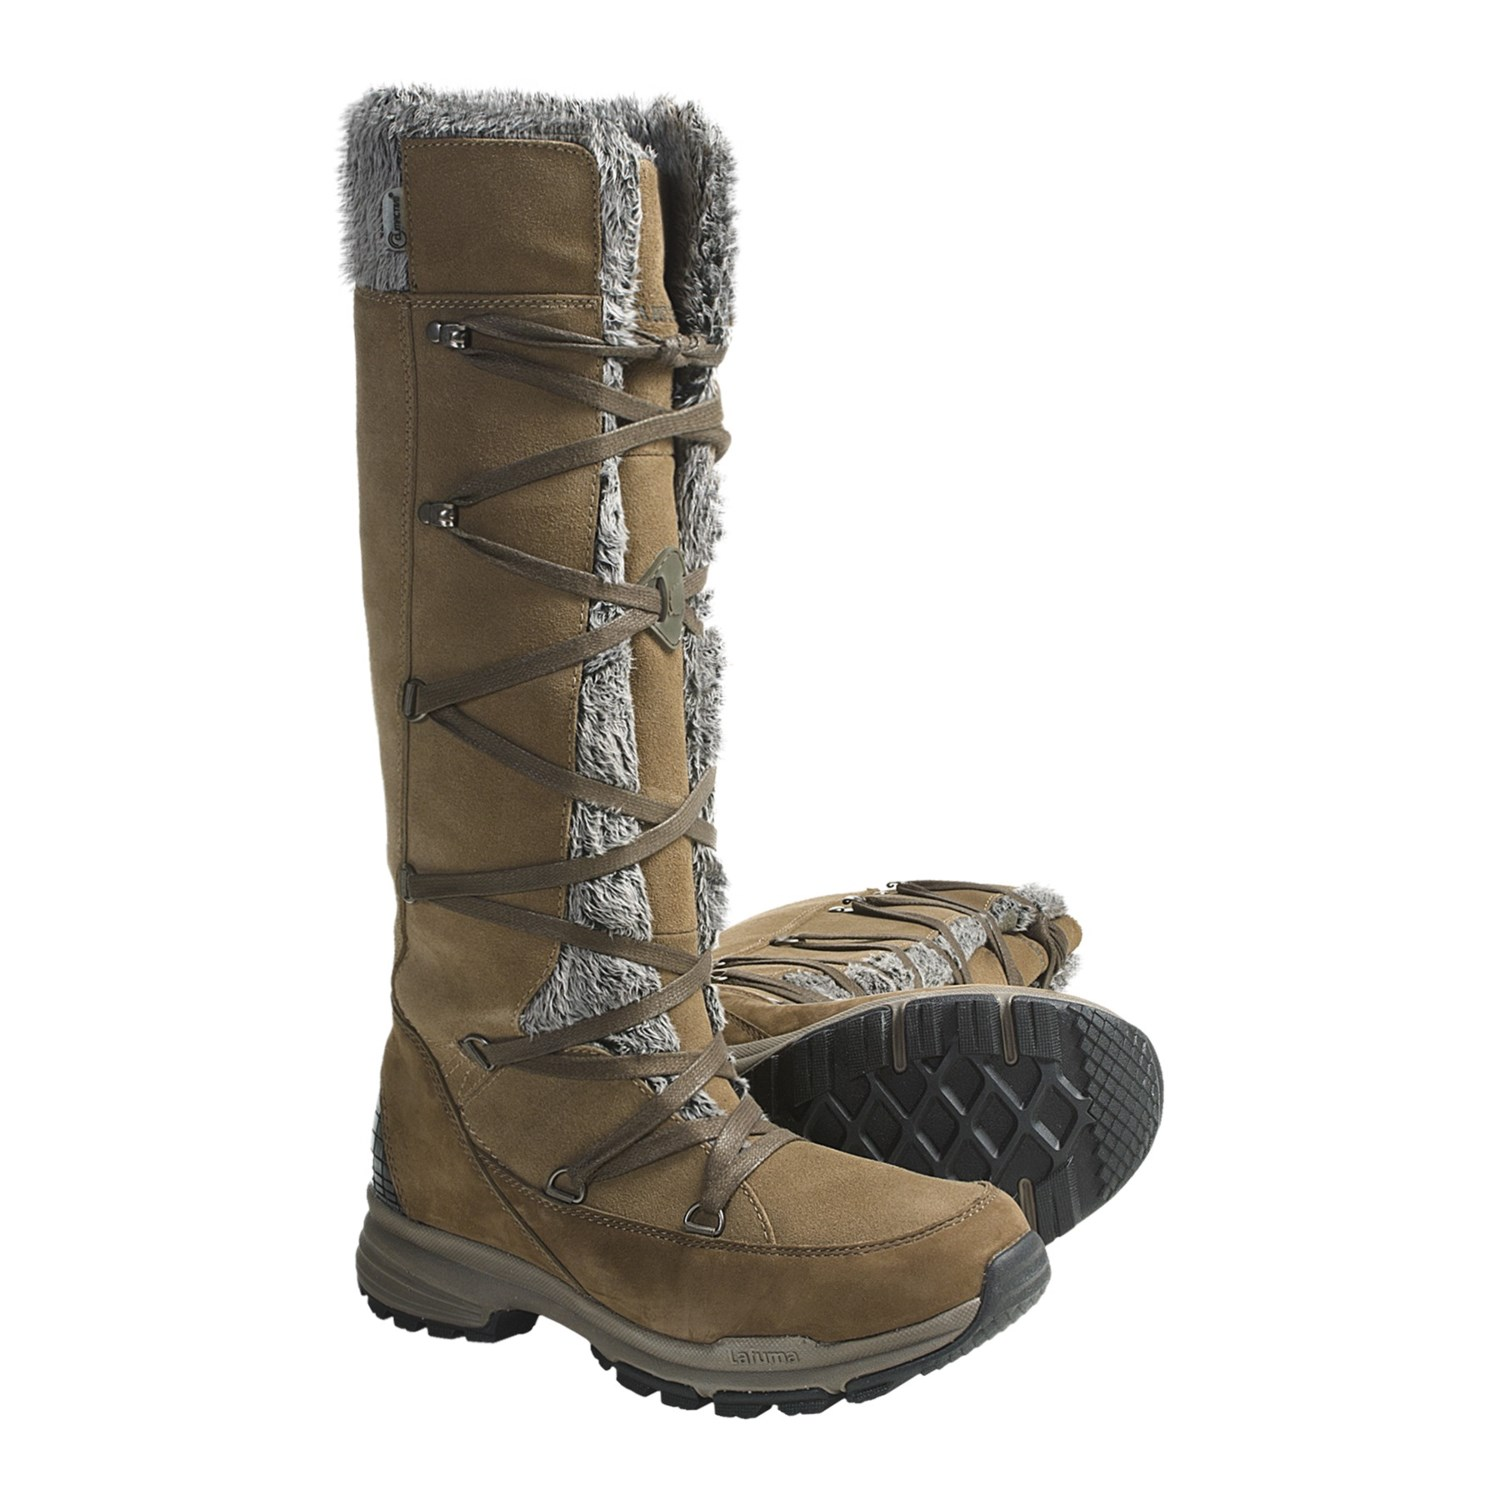 Fantastic If You Live Somewhere Cold Weather Presents More Than An Occasional Challenge, Conquer Old Man Winter With Sorels Joan Of Arctic Womens Snow Boots They Feature A Tasty, Toasty Faux Fur Snow Collar To Keep The Flakes From Falling Inside